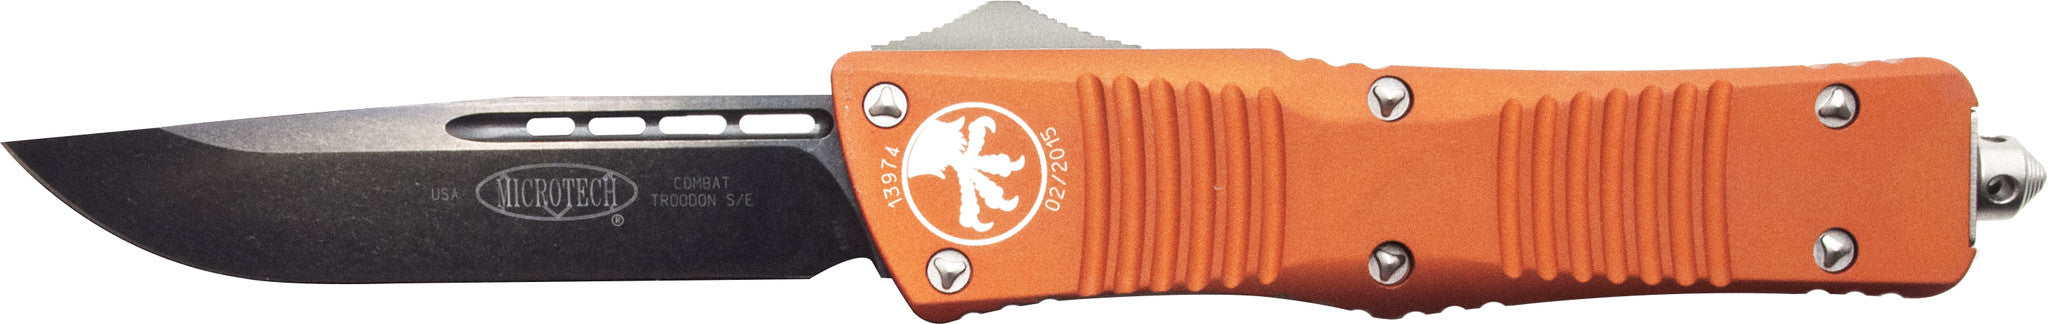 "Microtech Combat Troodon S/E OTF Automatic  (3.8"" Orange) 143-1OR - GearBarrel.com"